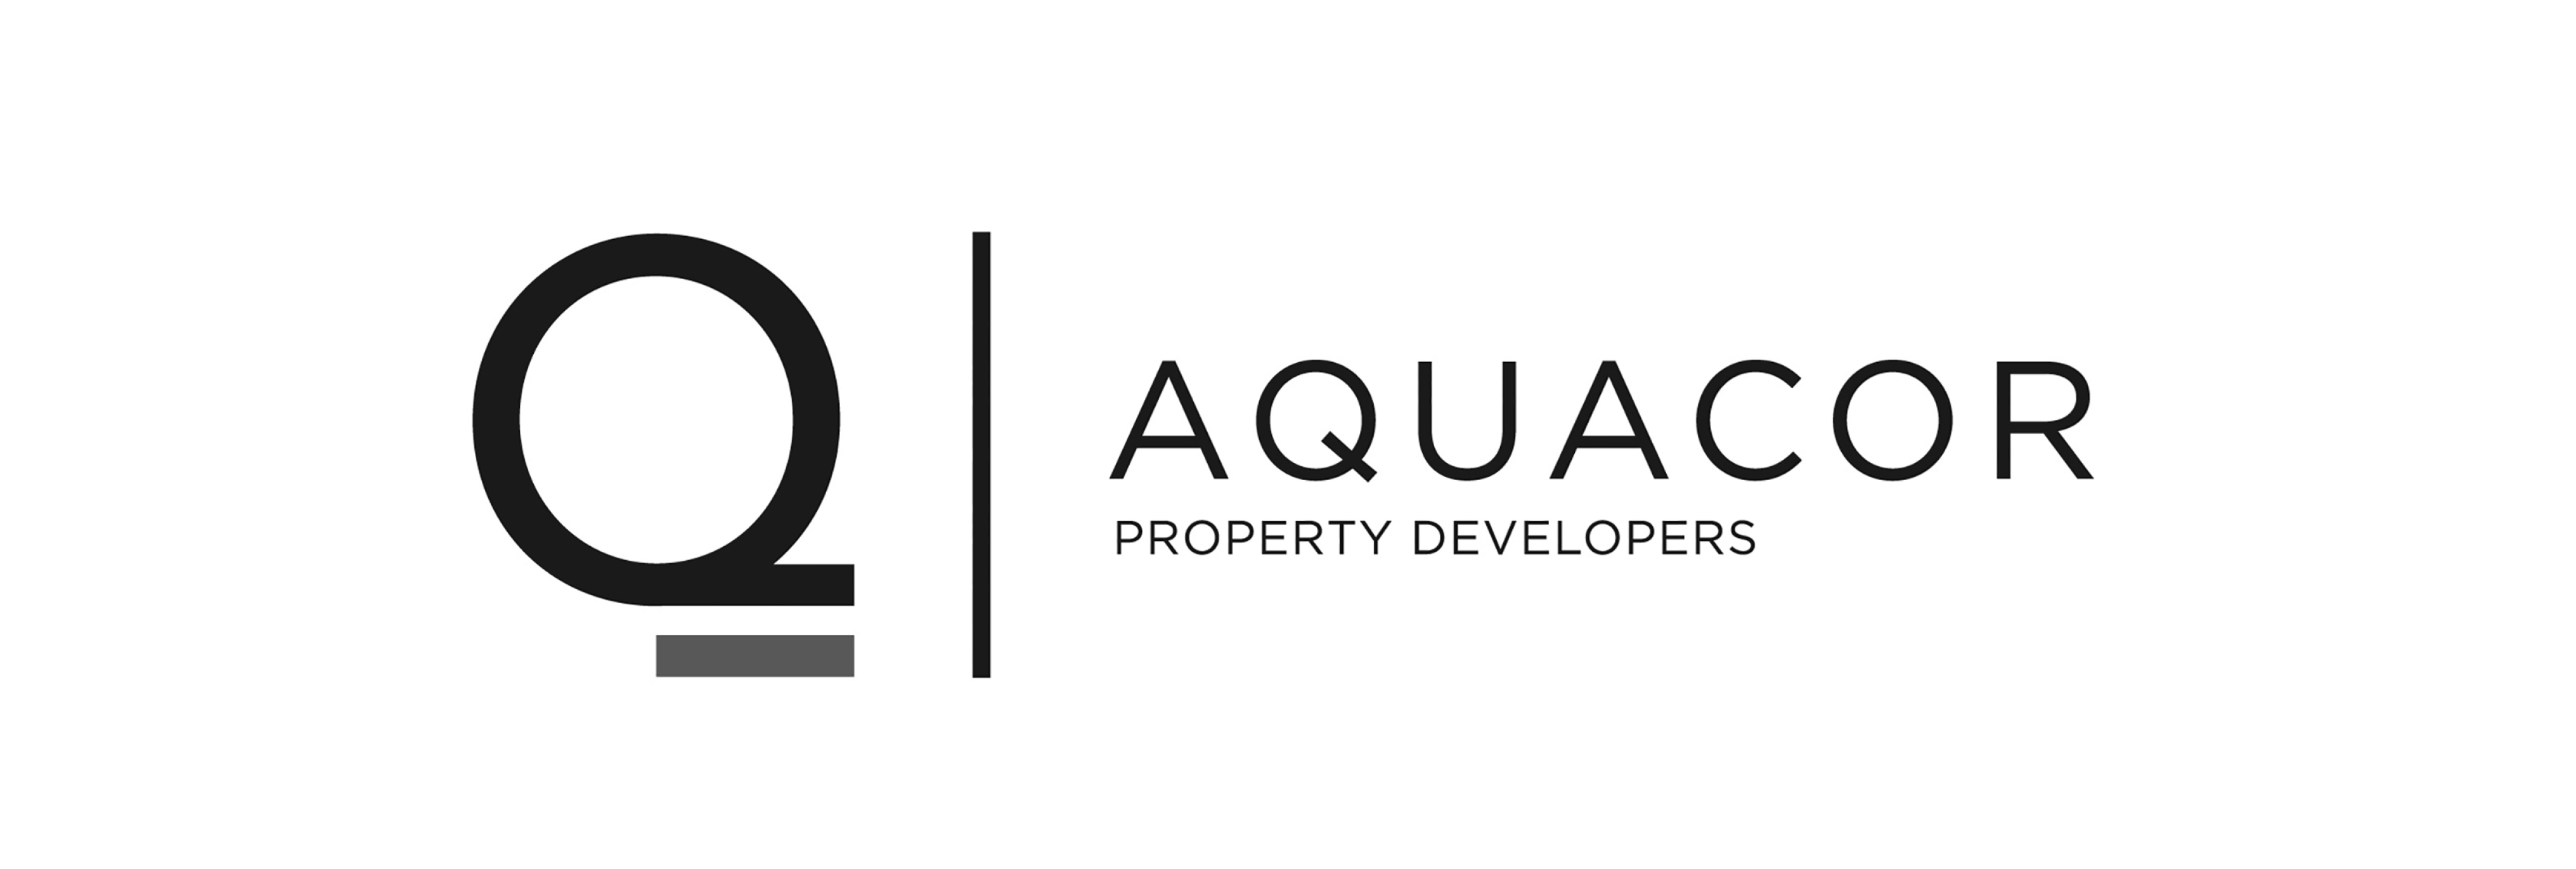 Aquacor | Odd Poppy Advertising Agency | Cape Town | Clients